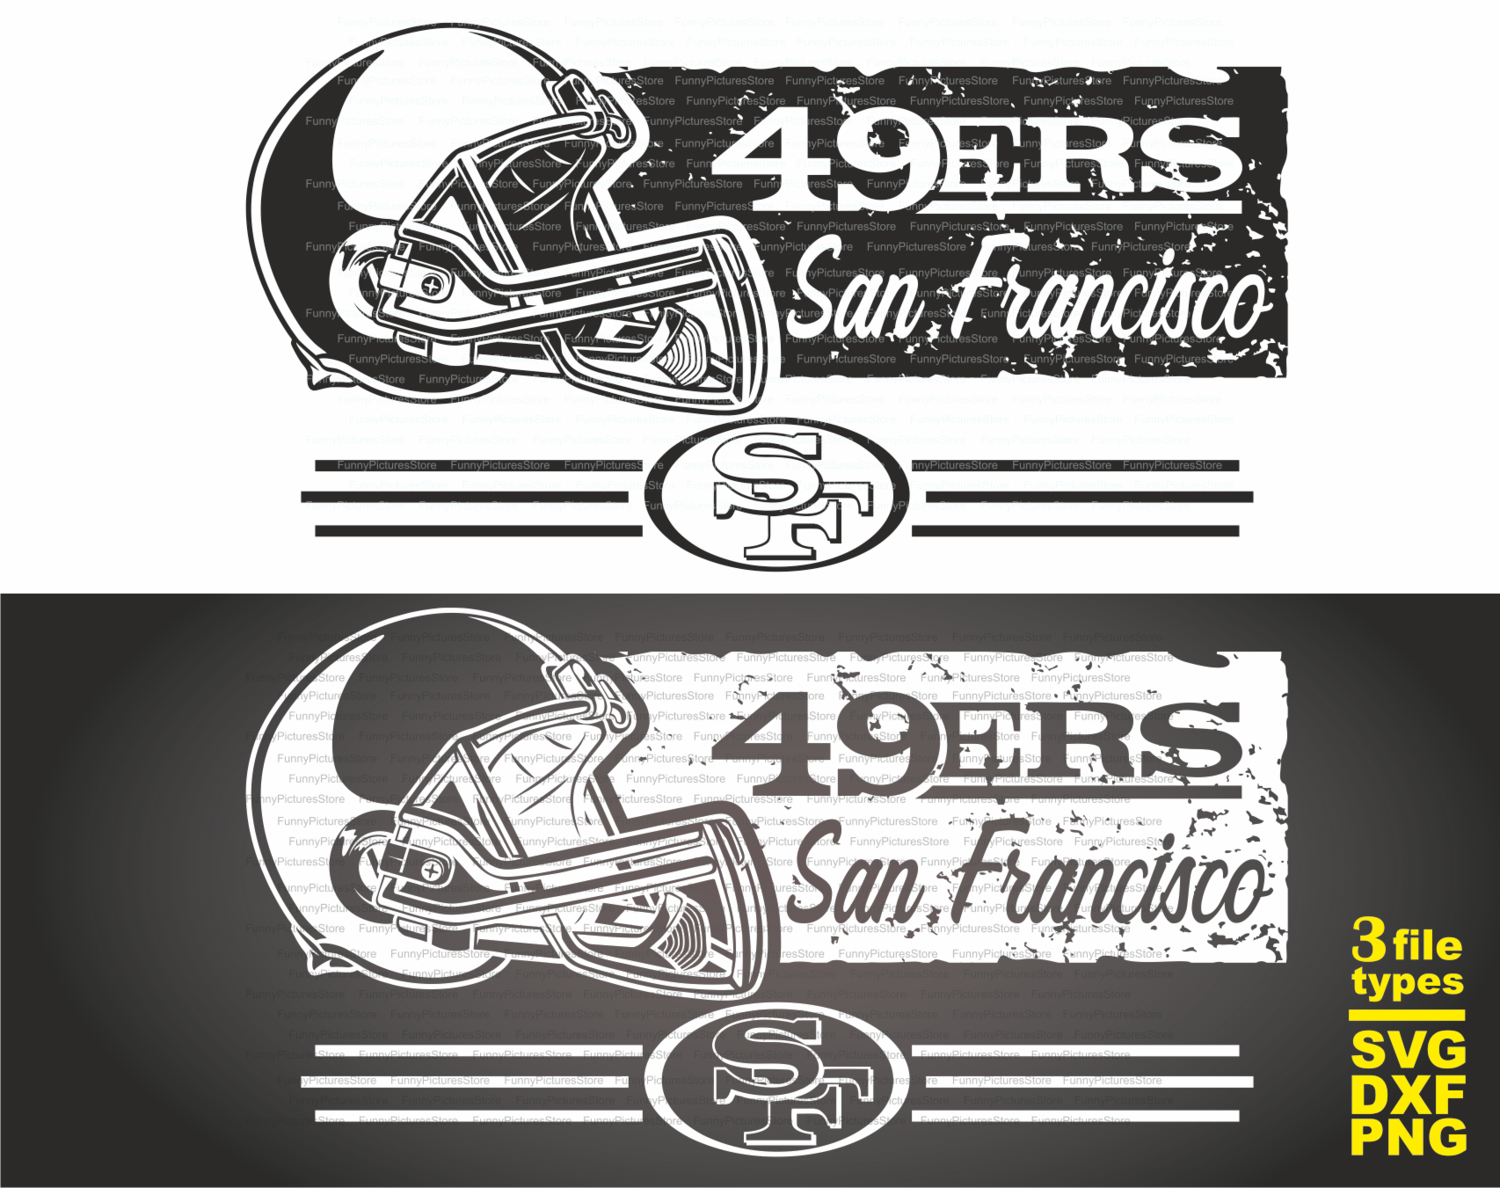 Print For T Shirt San Francisco 49 Ers Football Svg Svg Files For Cricut Instant Download Football Clipart 49 Ers Cricut American Football Svg T Shirt For A Fan Raiders 49 Ers Svg